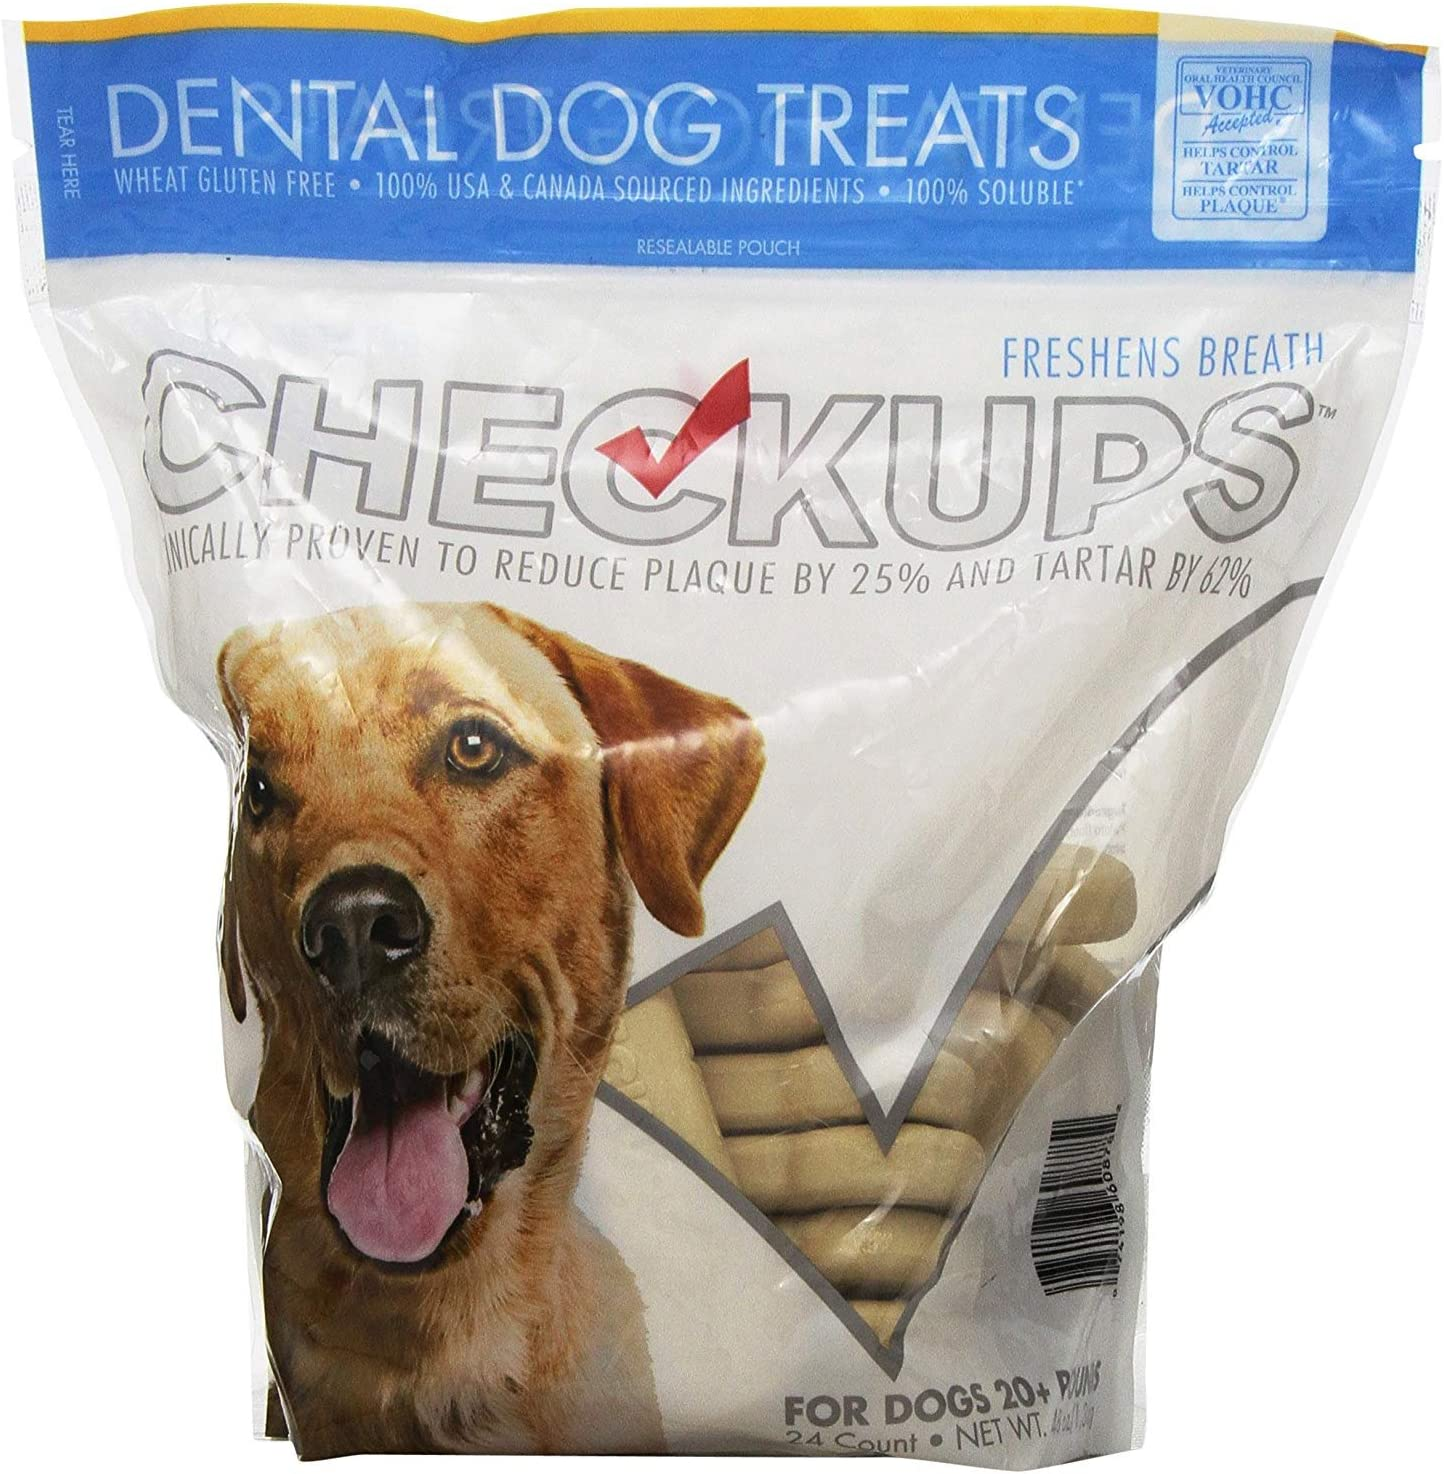 Checkups- Dental Dog Treats, 24ct 48 oz. for Dogs 20 pounds 3Packs